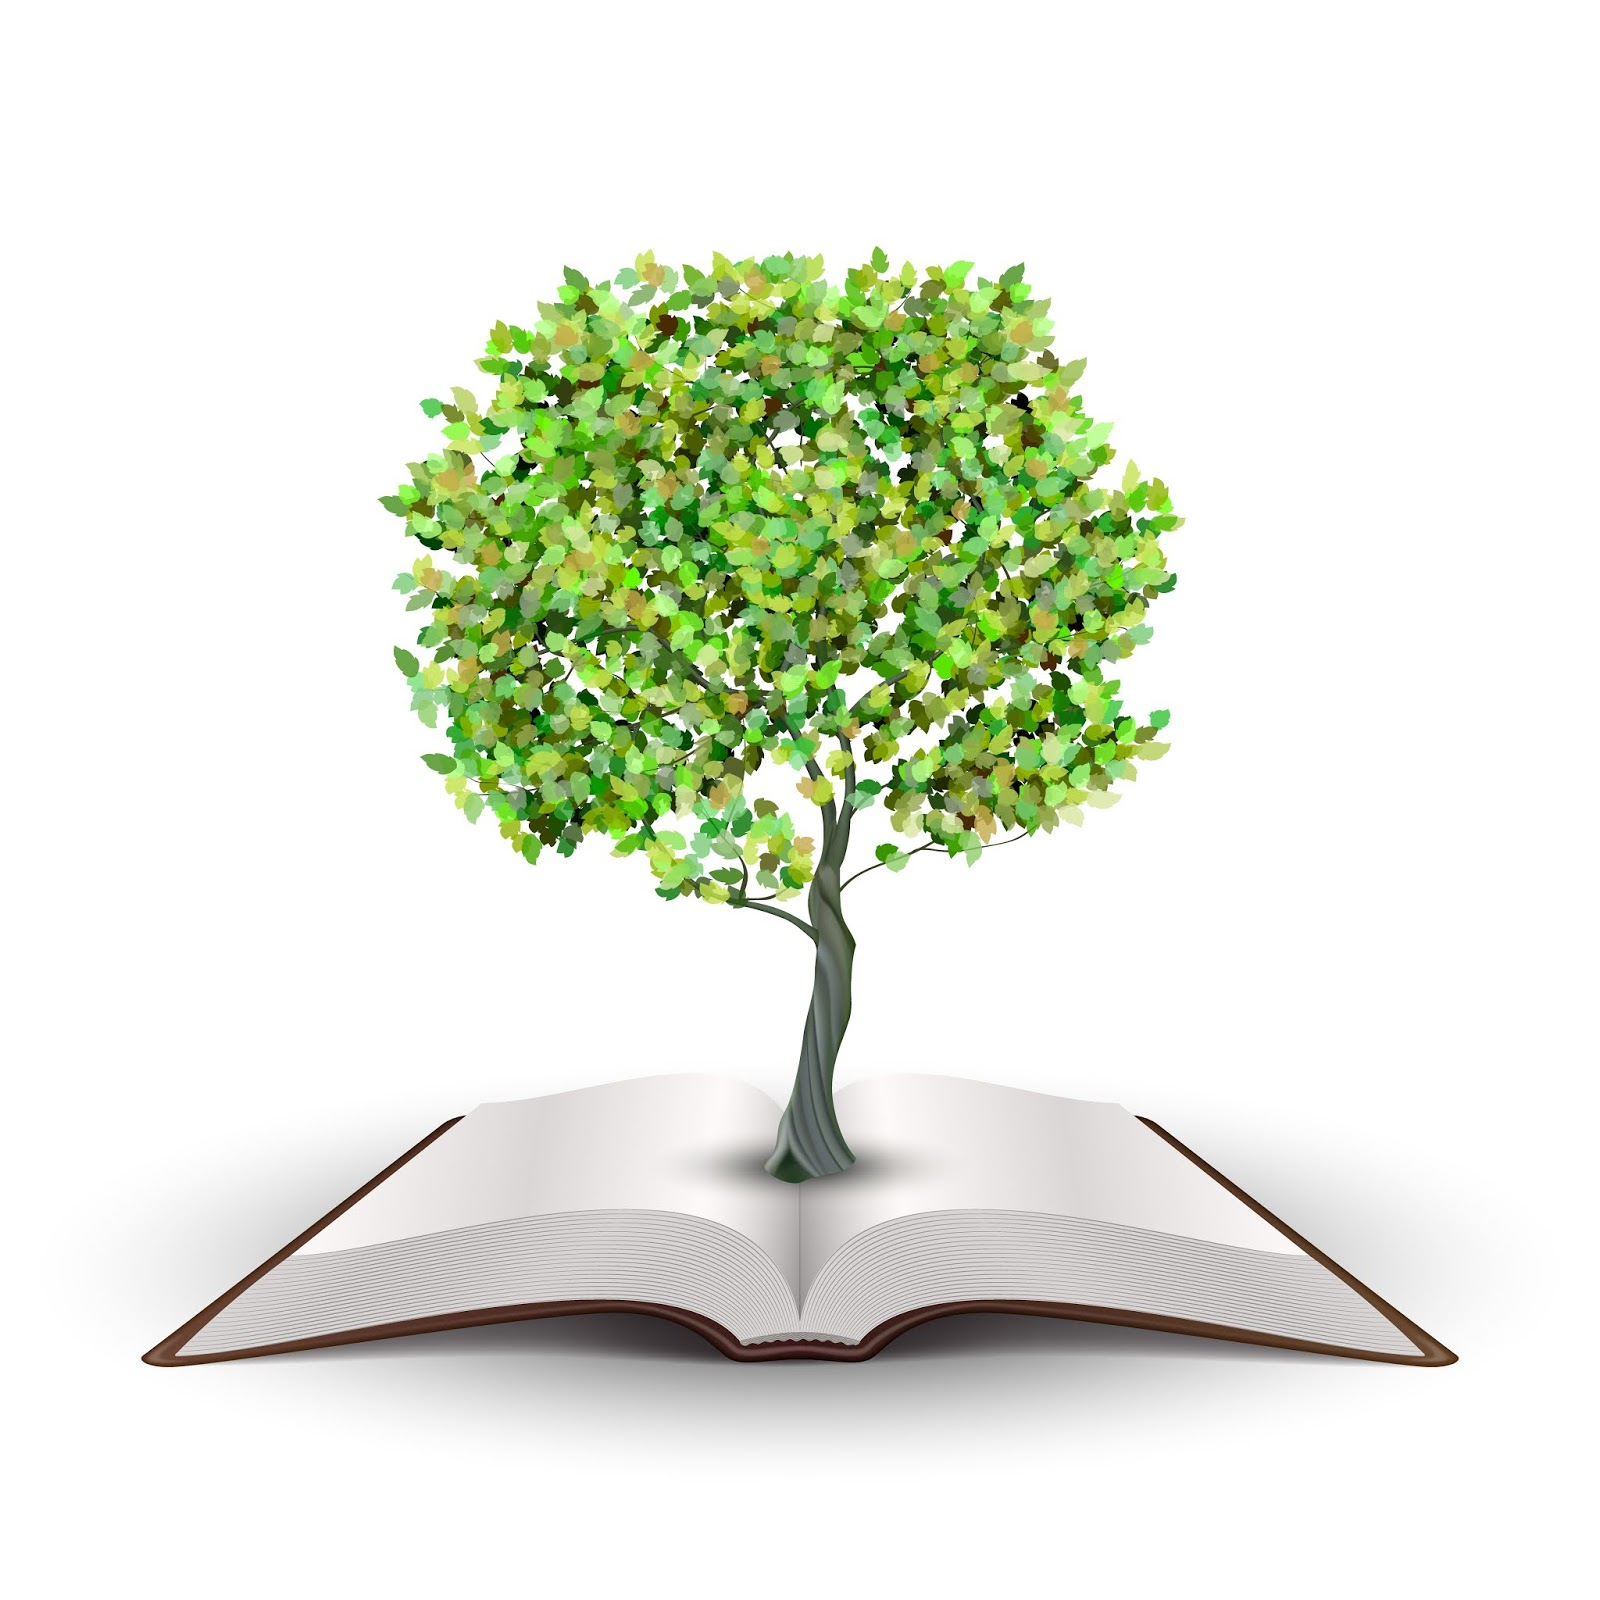 Tree Growing From Open Book Vector Isolated White Free Download Vector CDR, AI, EPS and PNG Formats